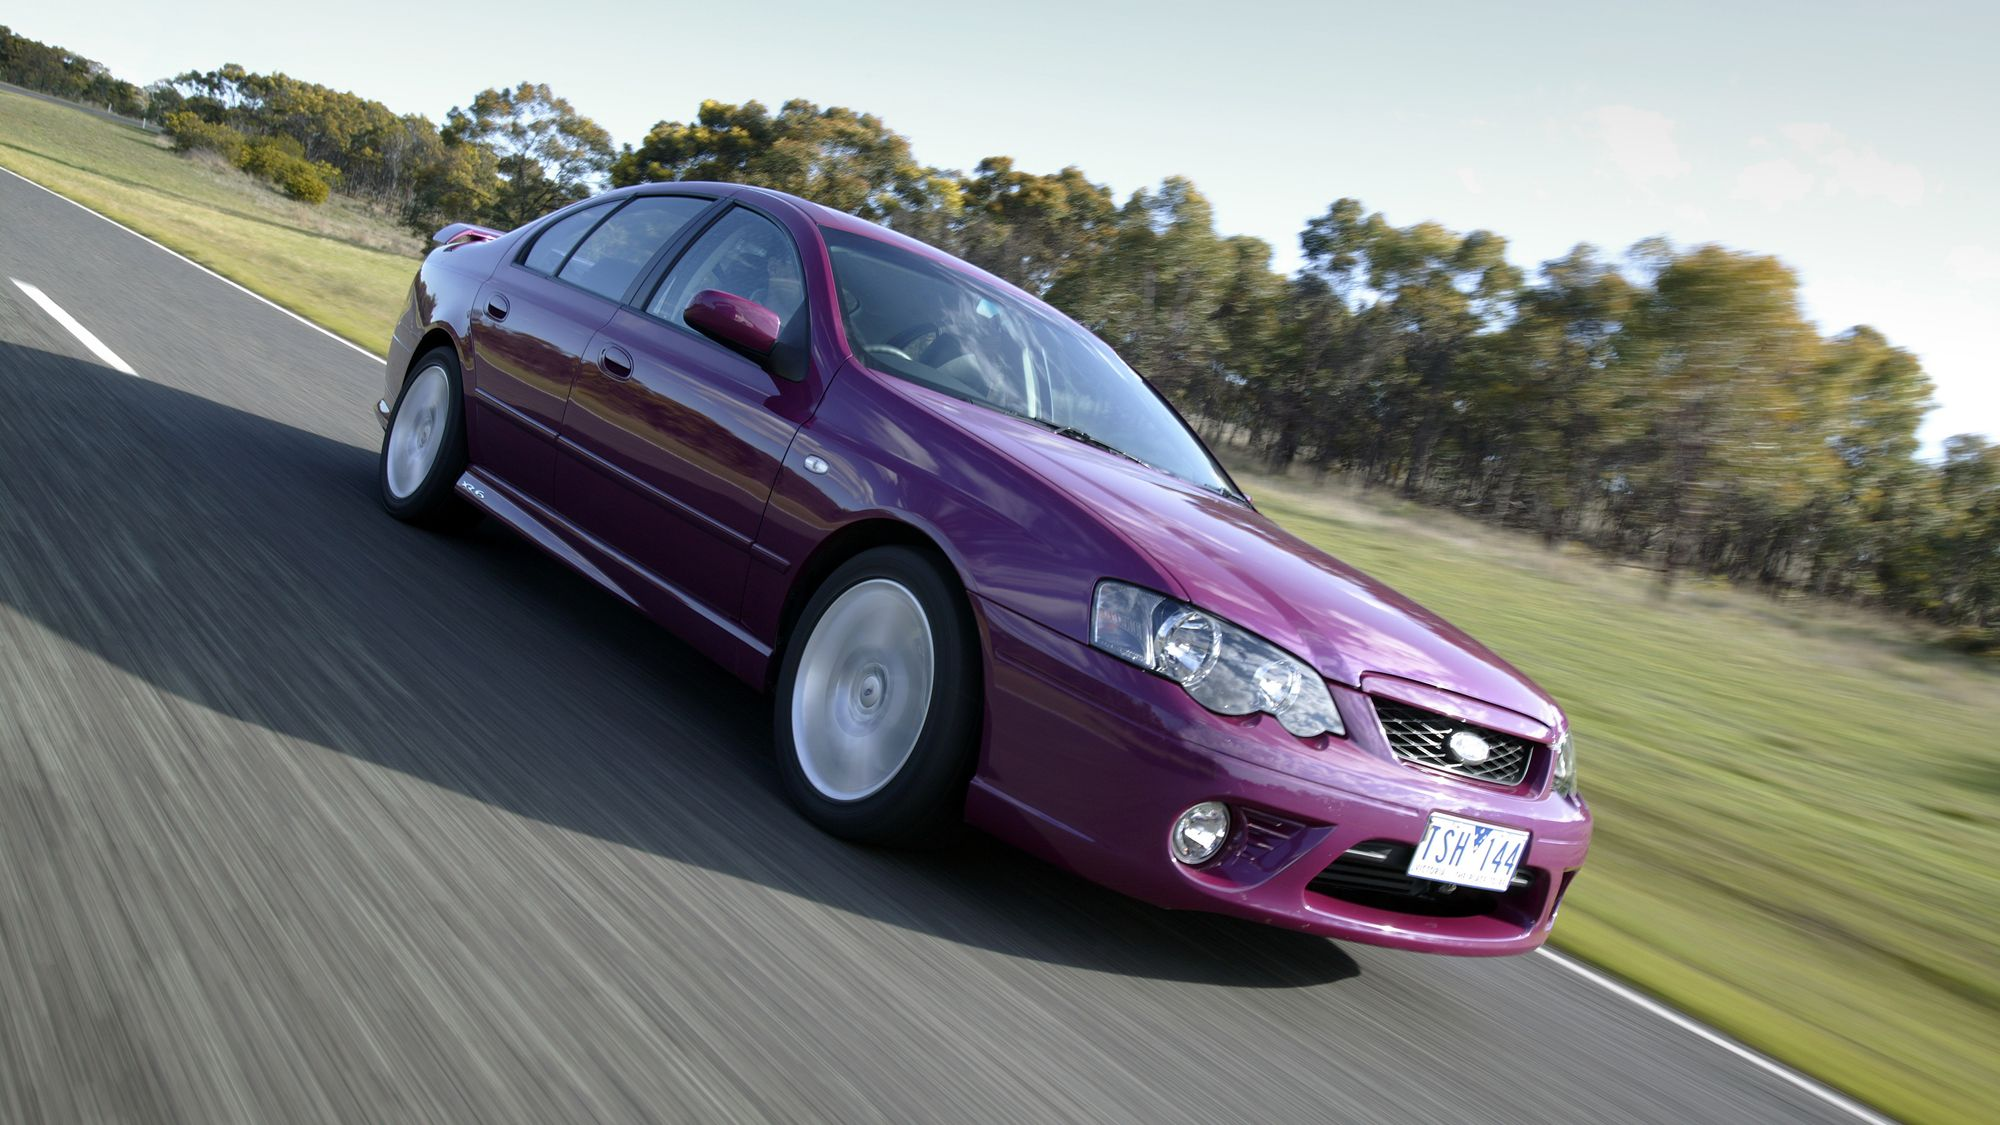 Ford Falcon BF XR6 Turbo Used Car Review